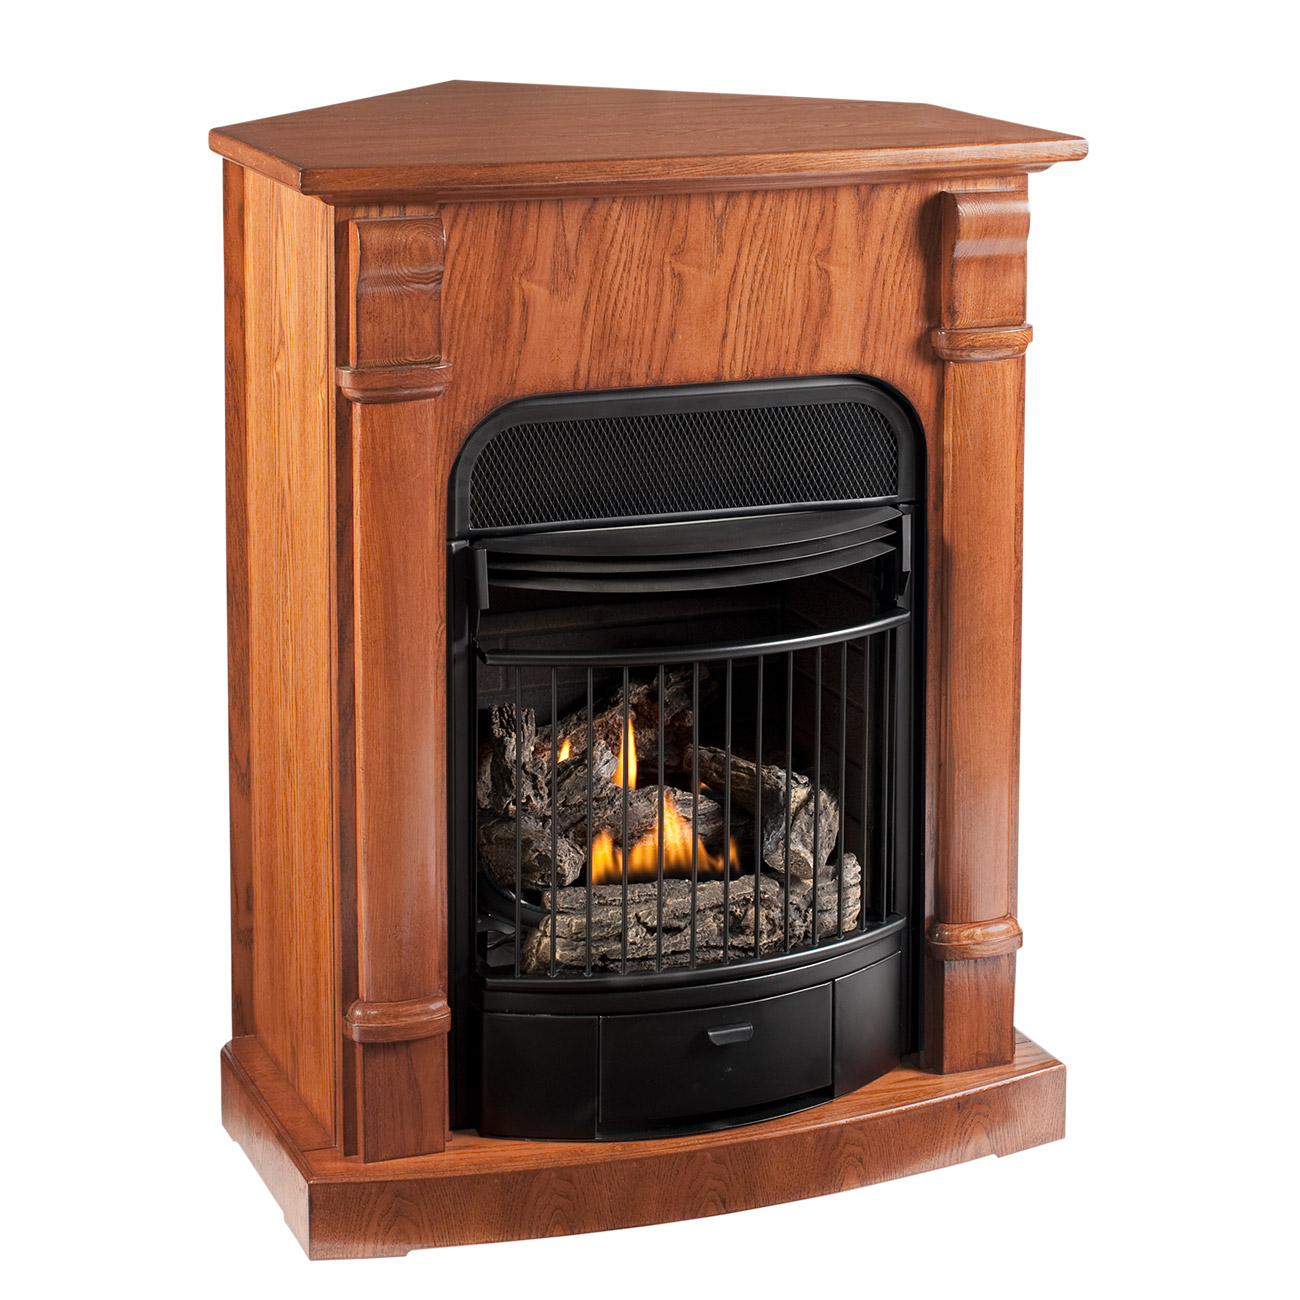 Ventless Fireplace Model Edp200t2 Mo